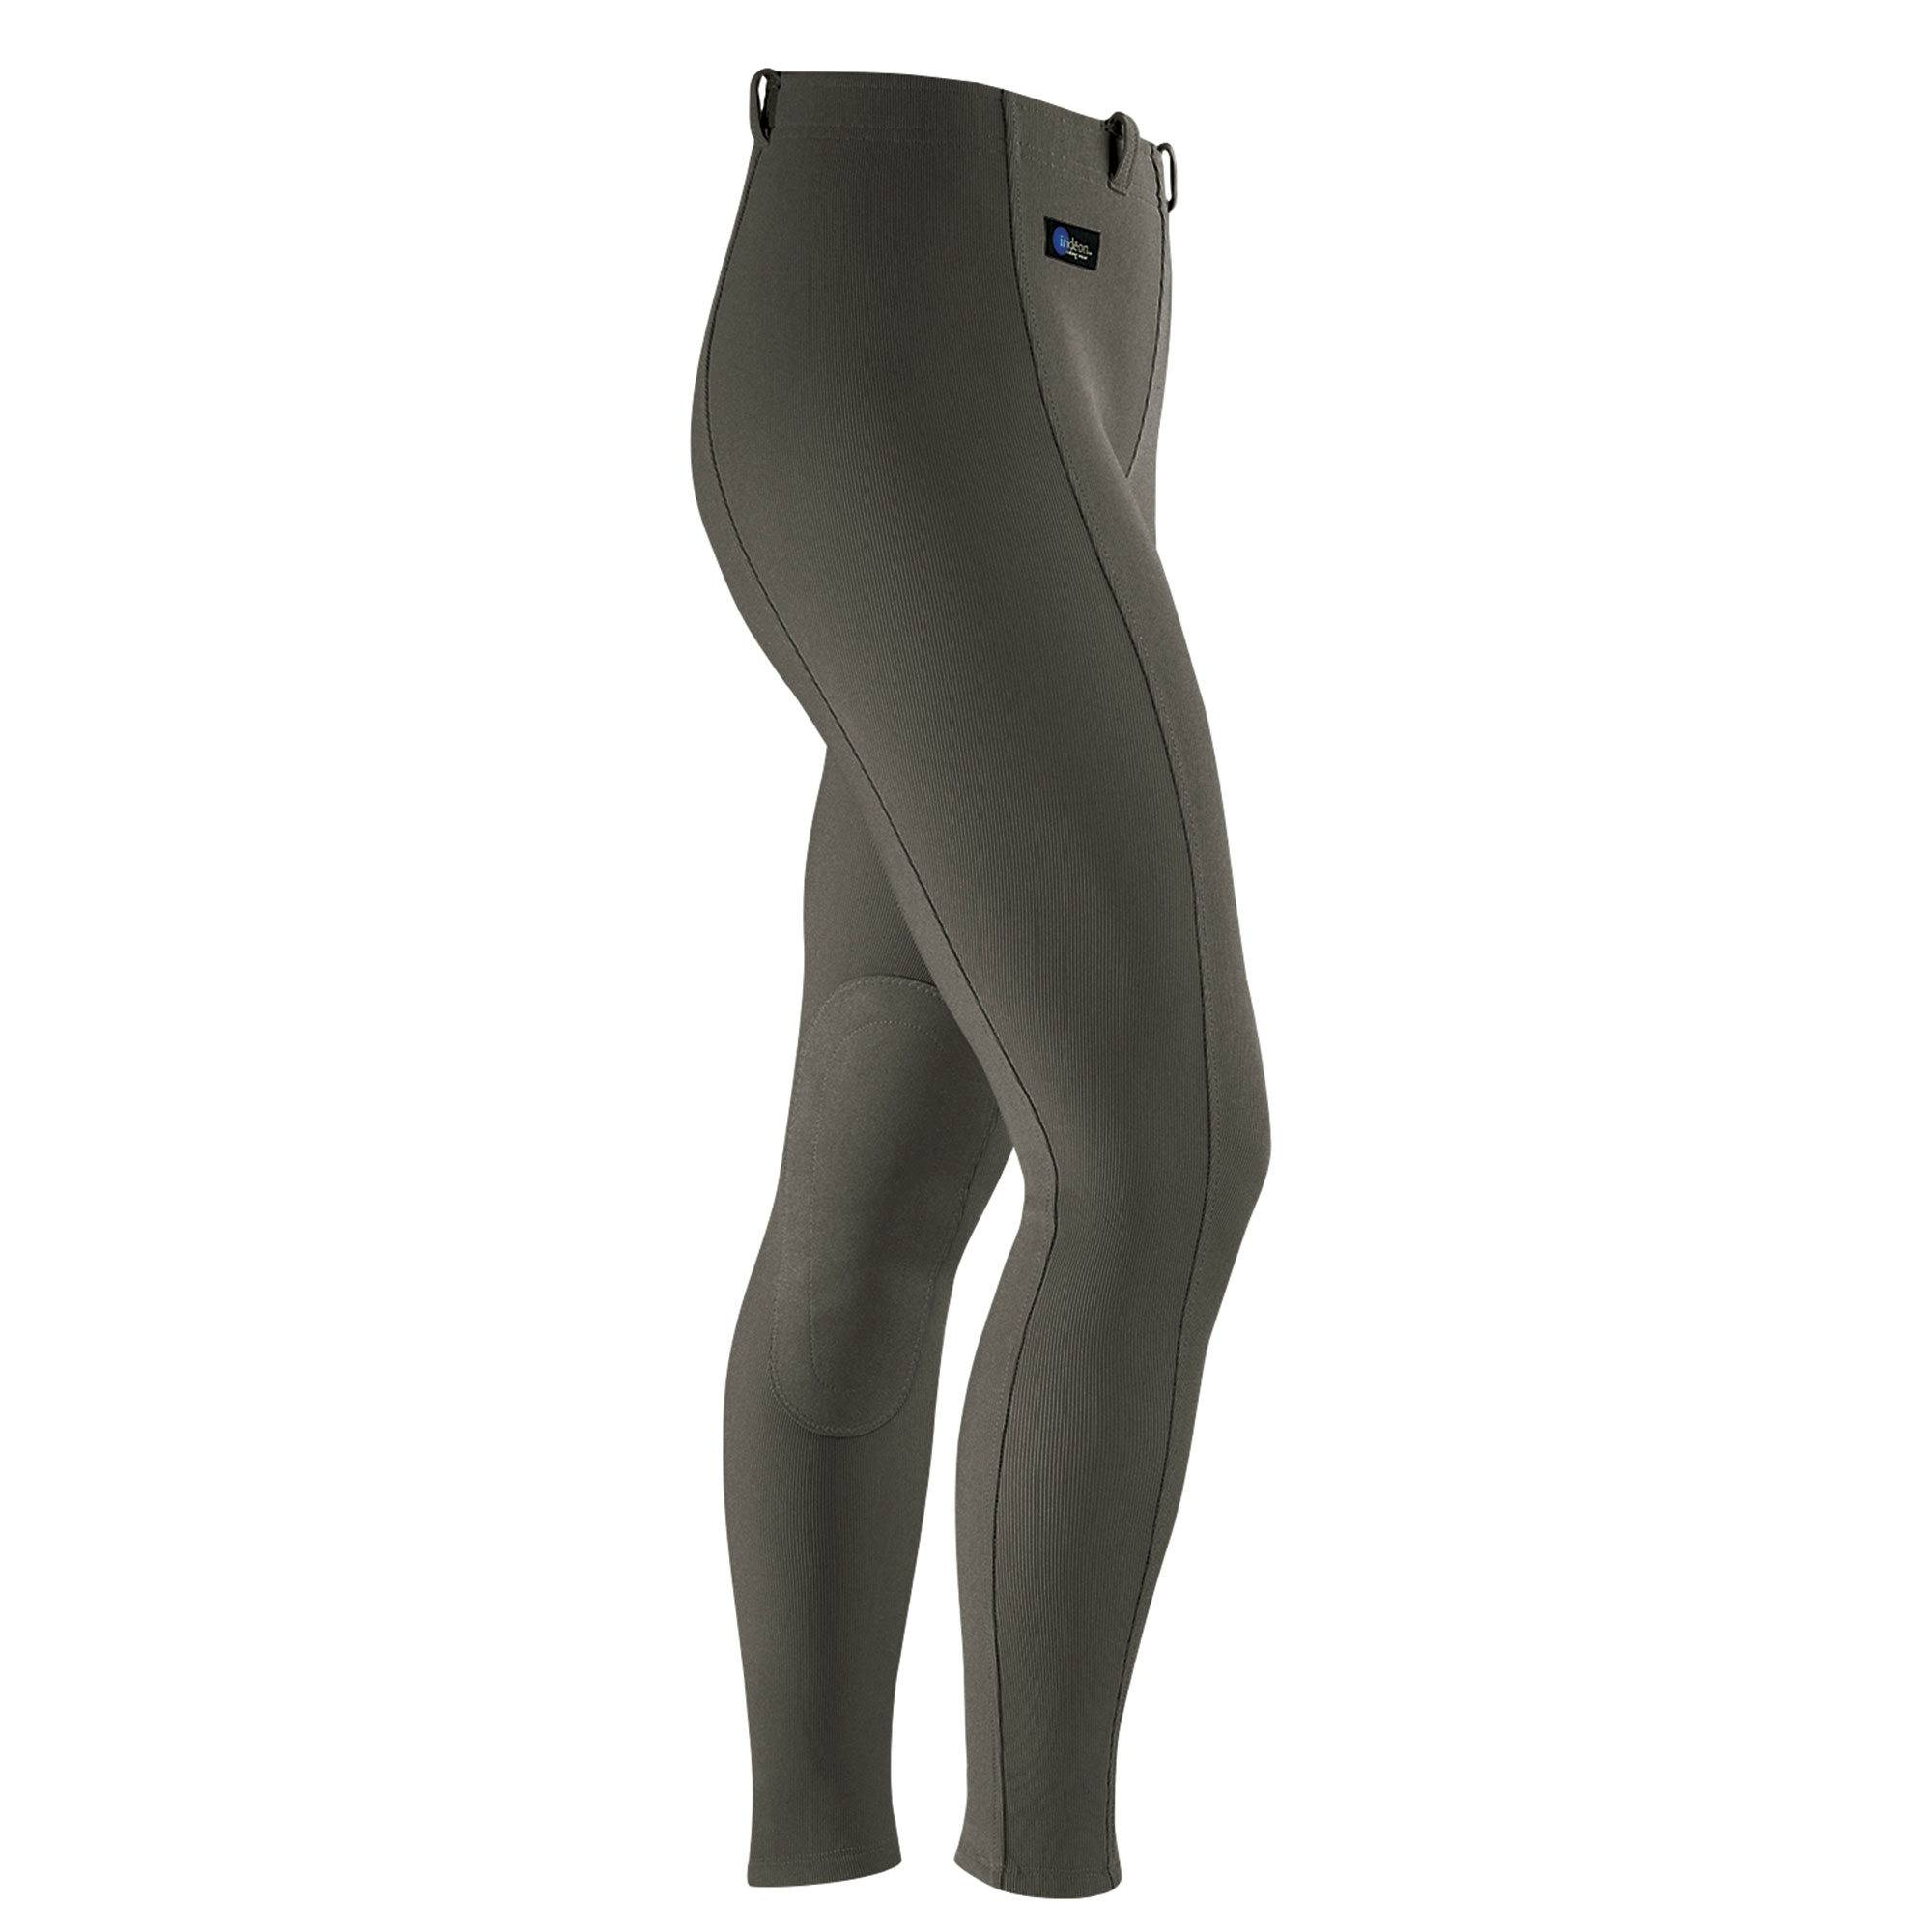 Irideon Cadence Stretch-Cord Knee Patch Breeches - Ladies